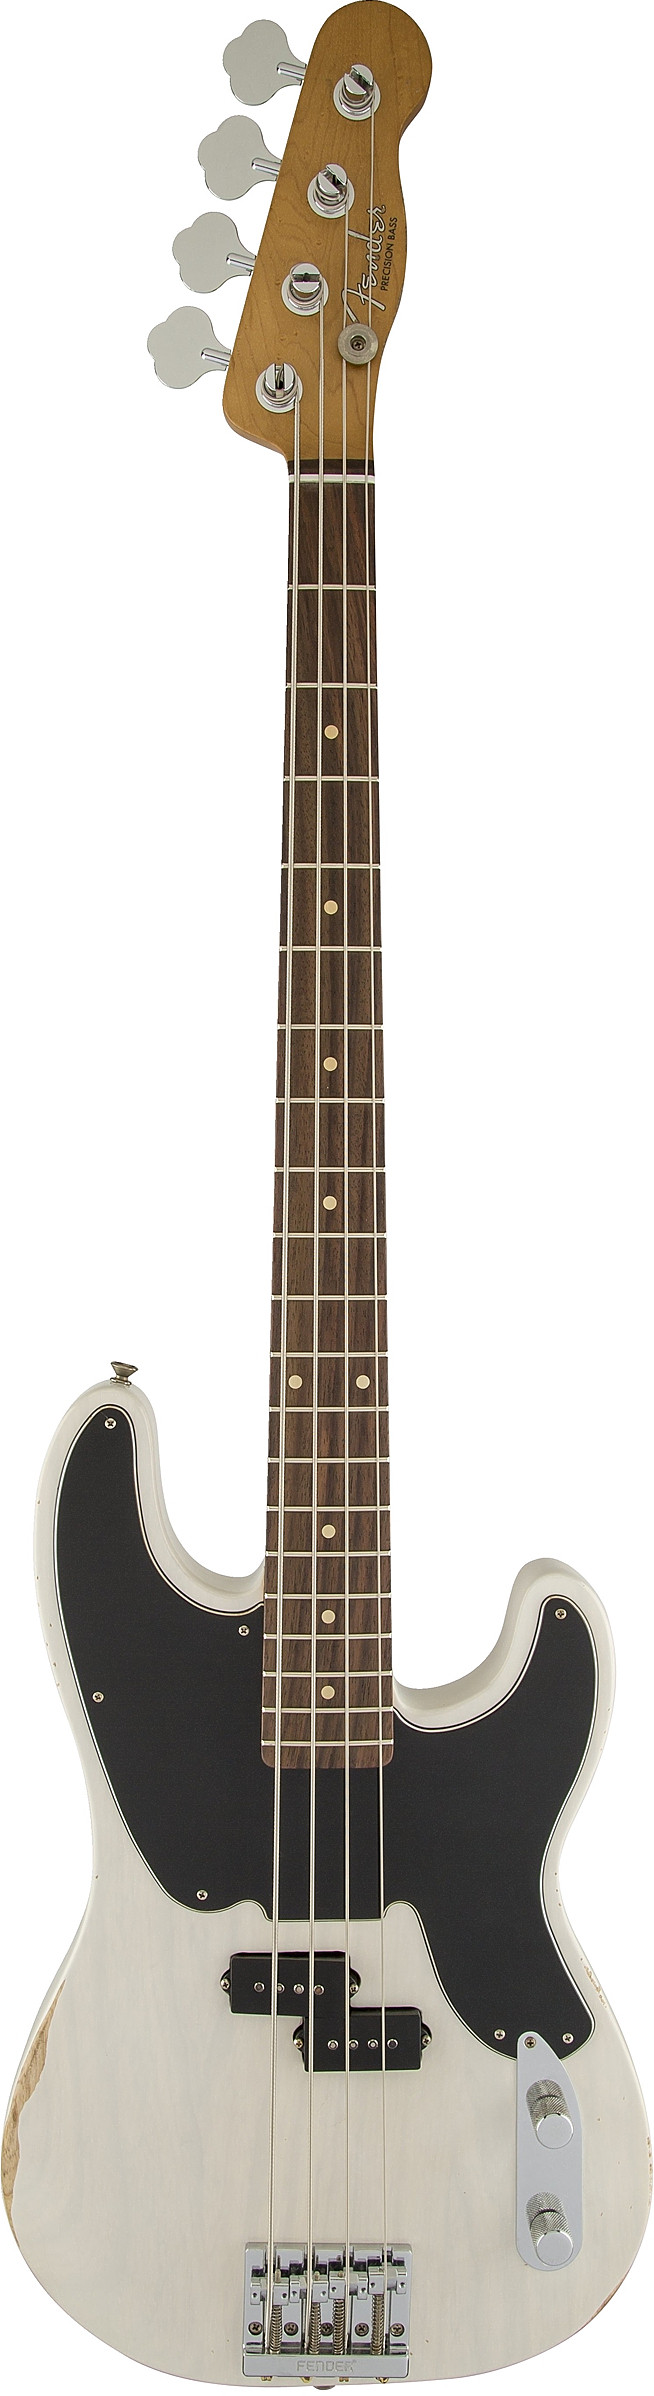 Mike Dirnt Road Worn Precision Bass by Fender